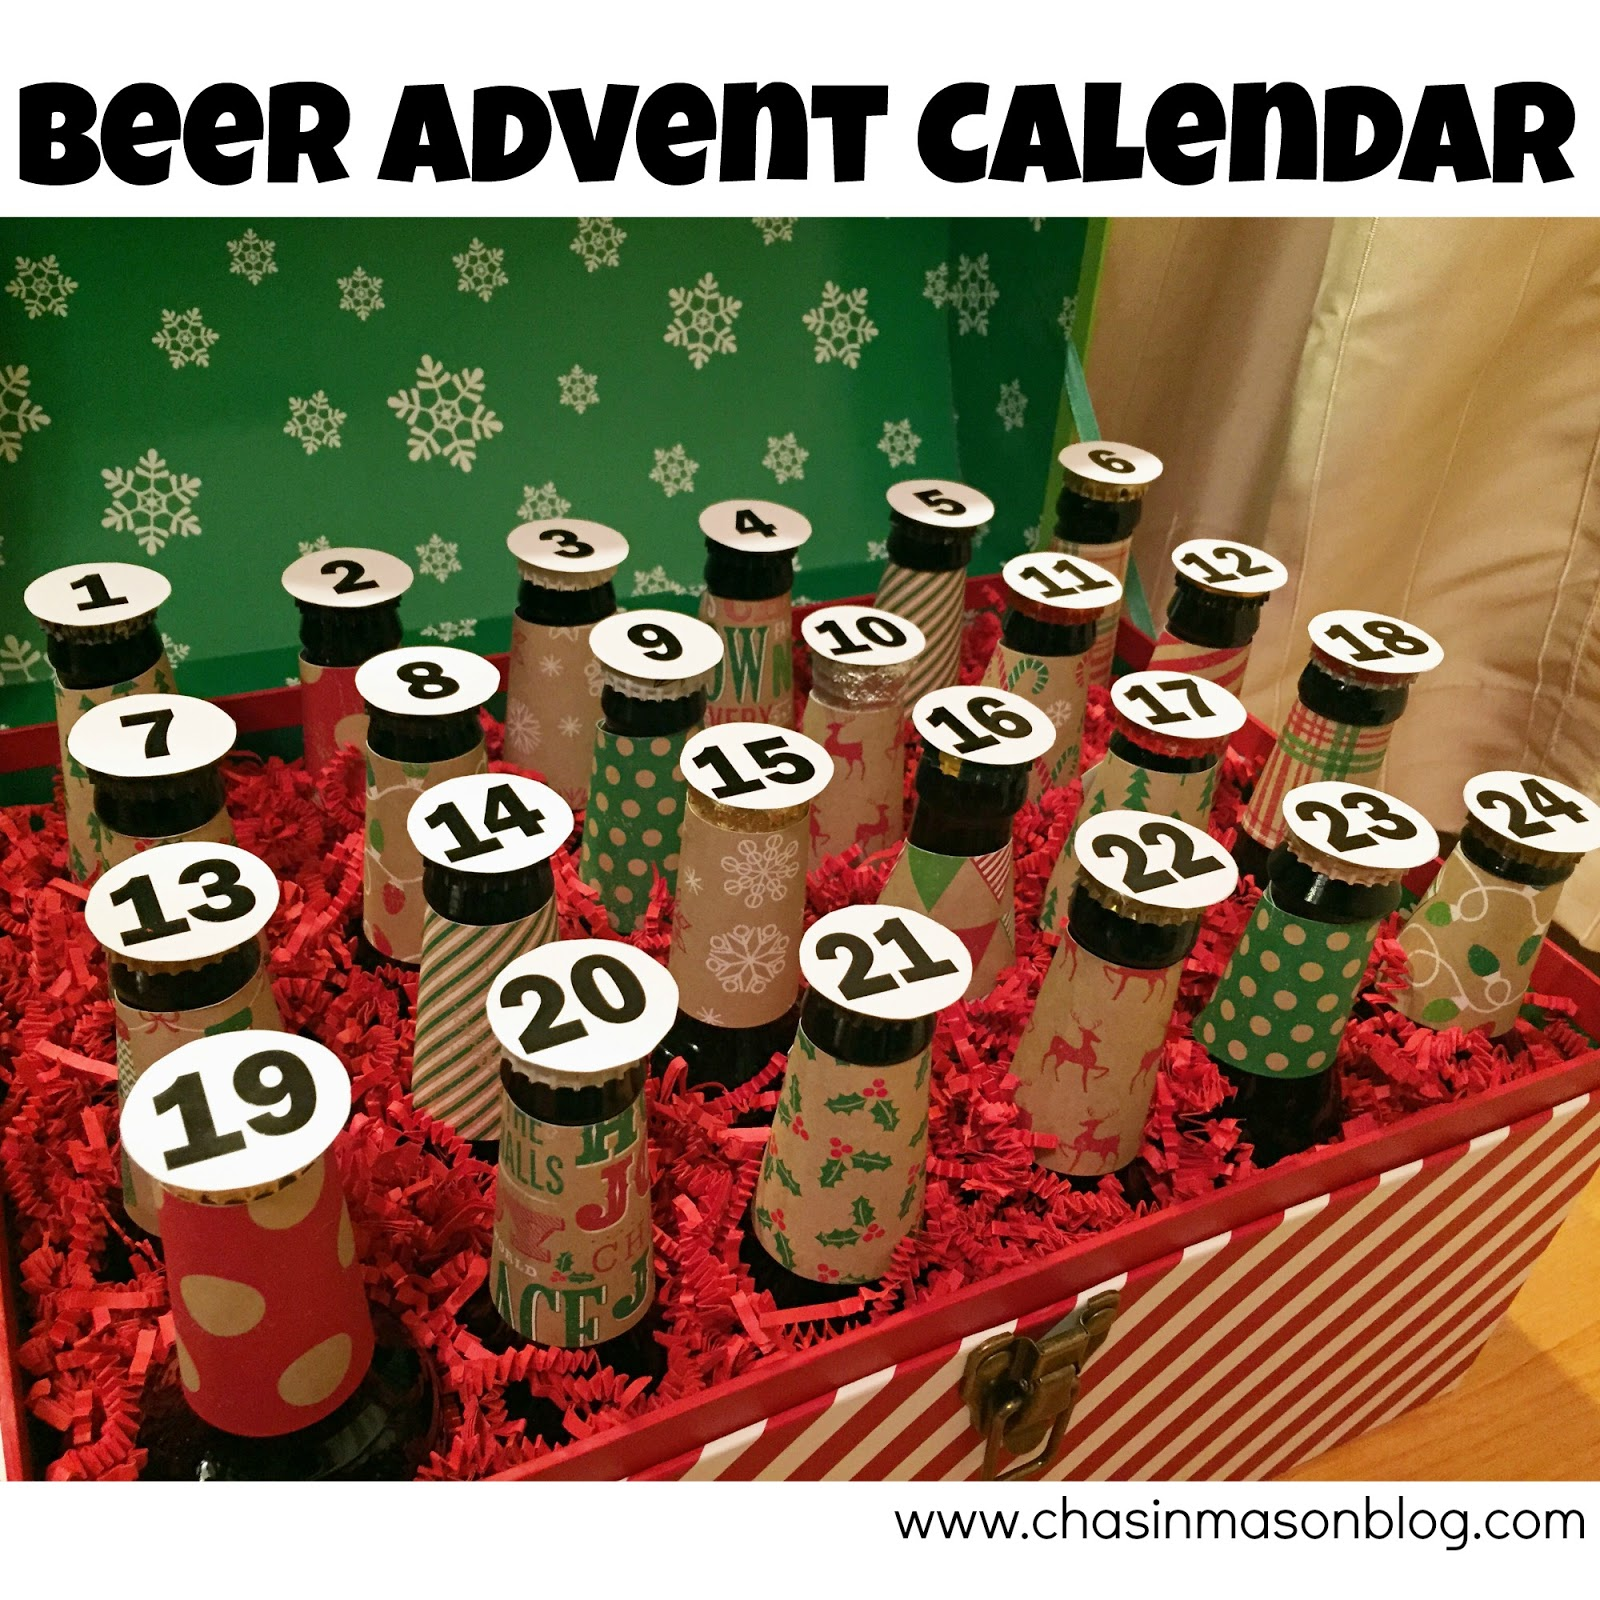 Chasin mason gifts for the husband diy beer advent calendar chasin mason beer advent calendar solutioingenieria Gallery